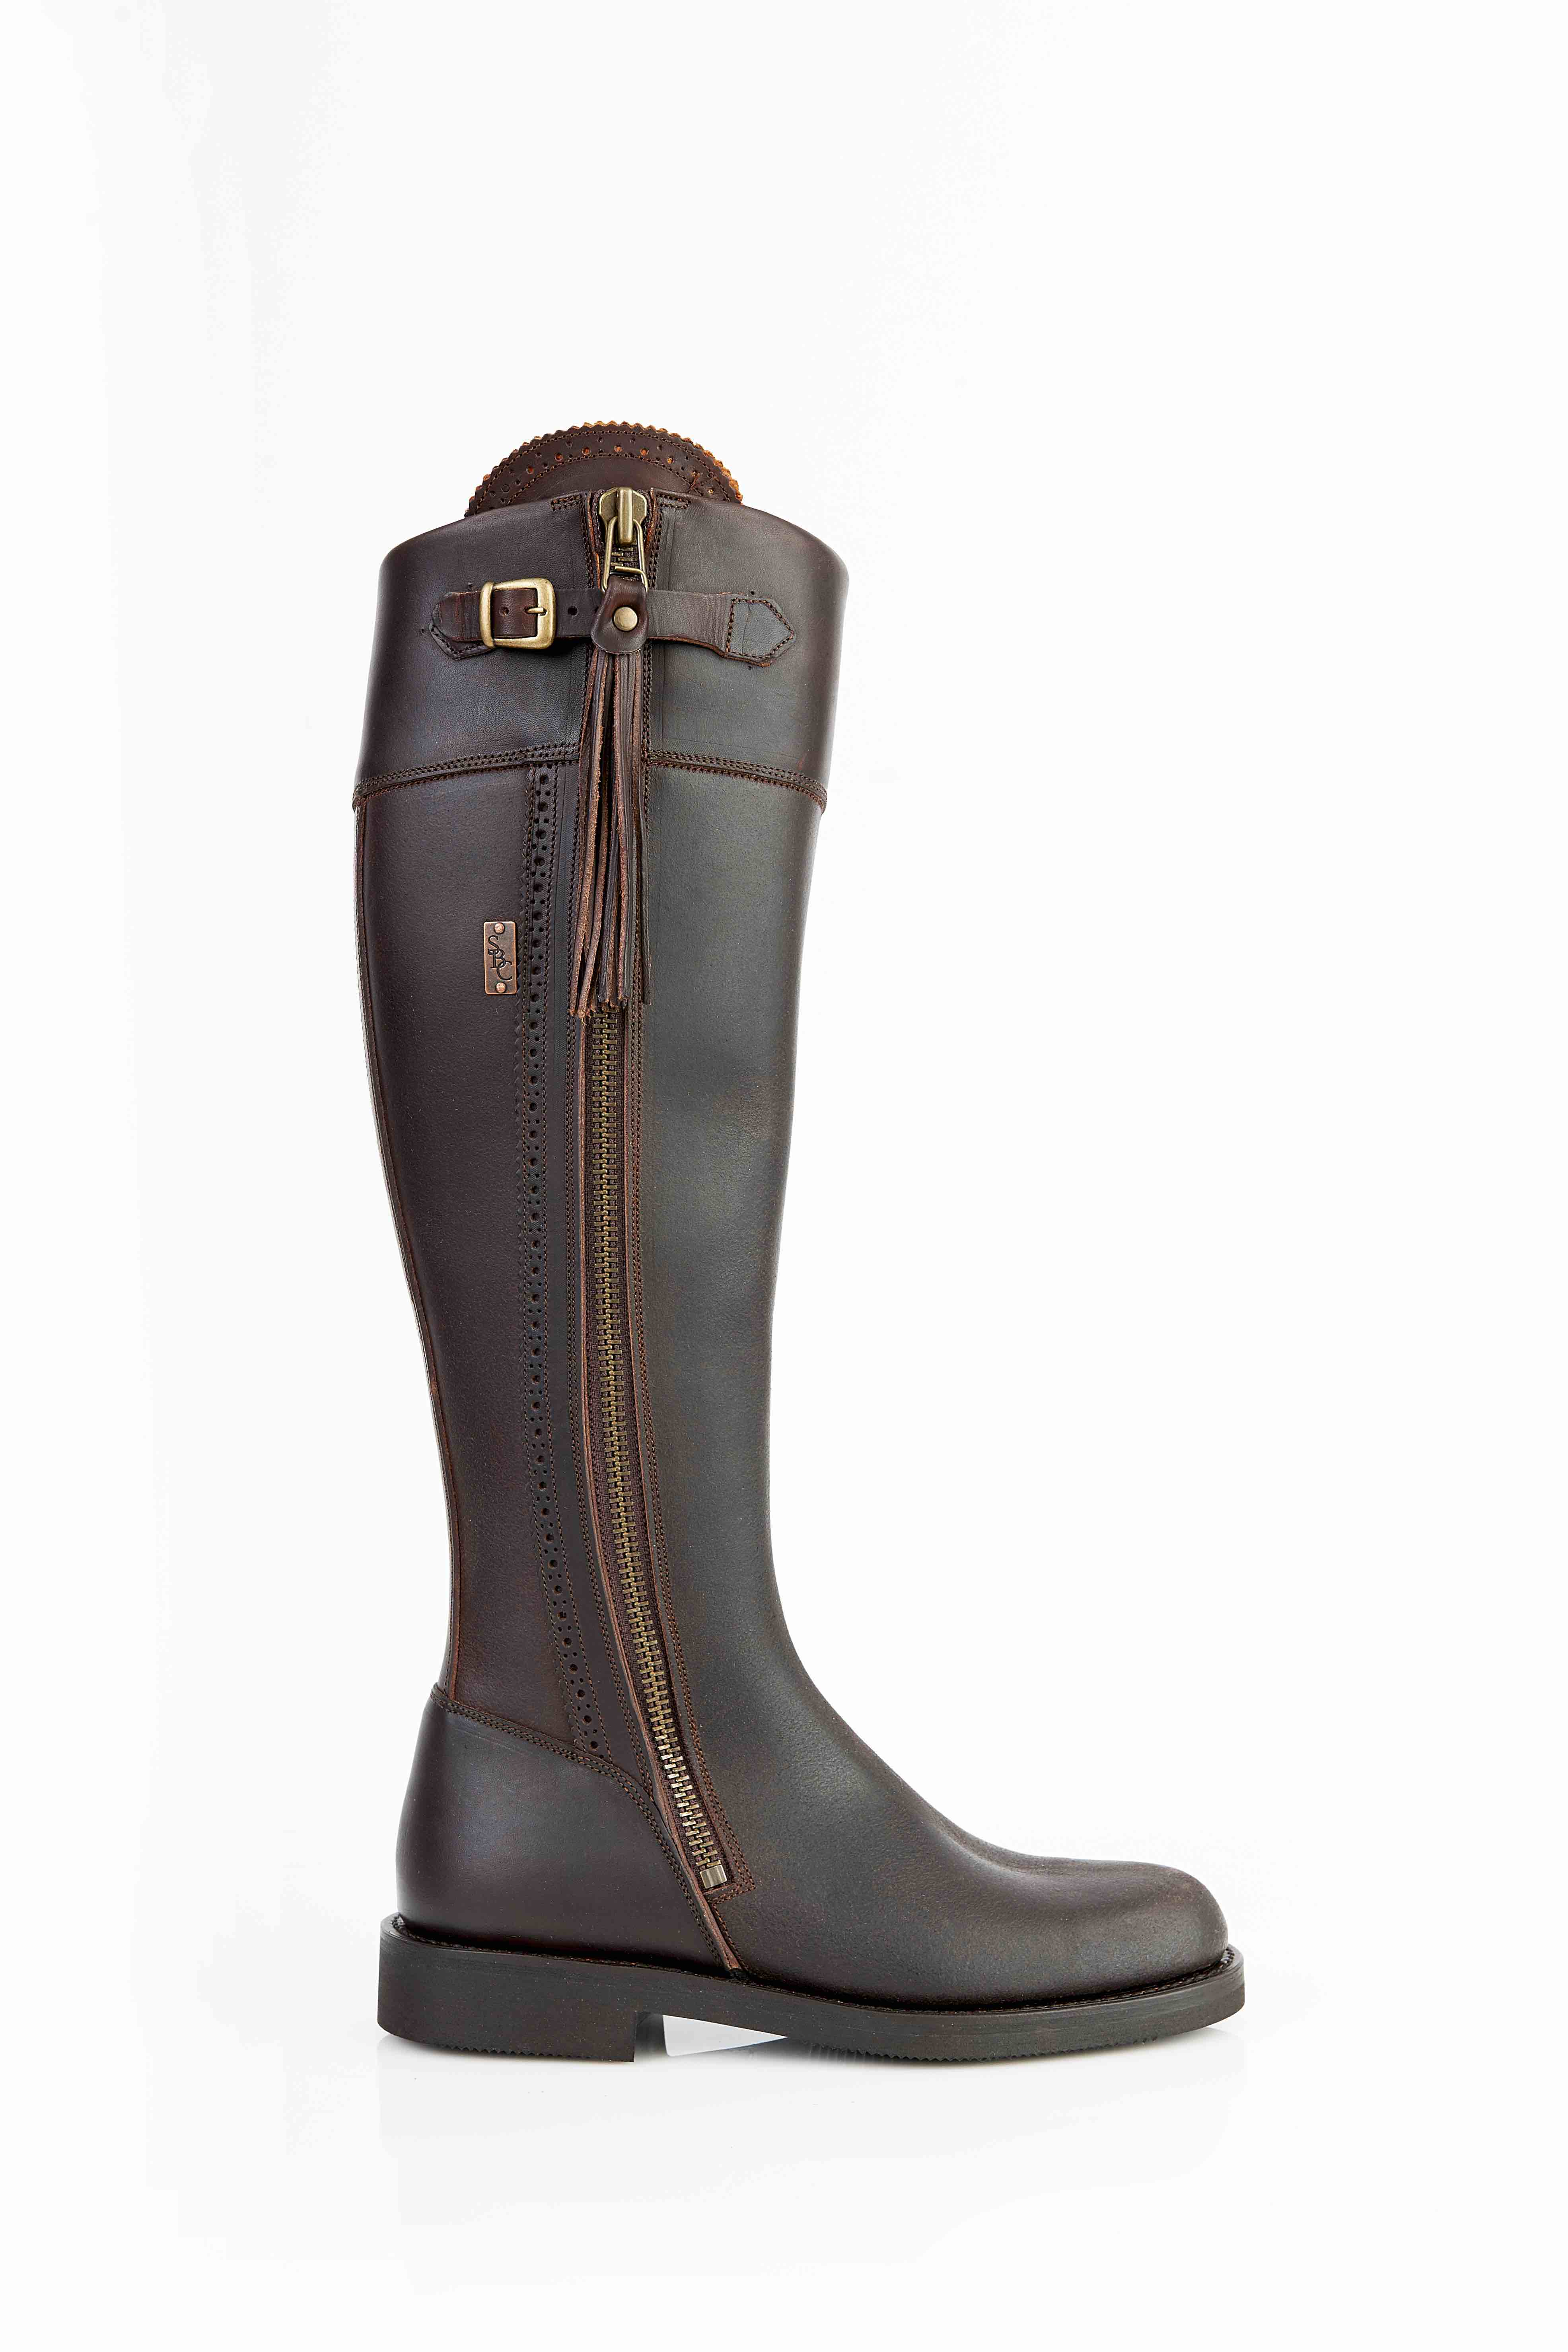 Spanish Riding Boots Tall